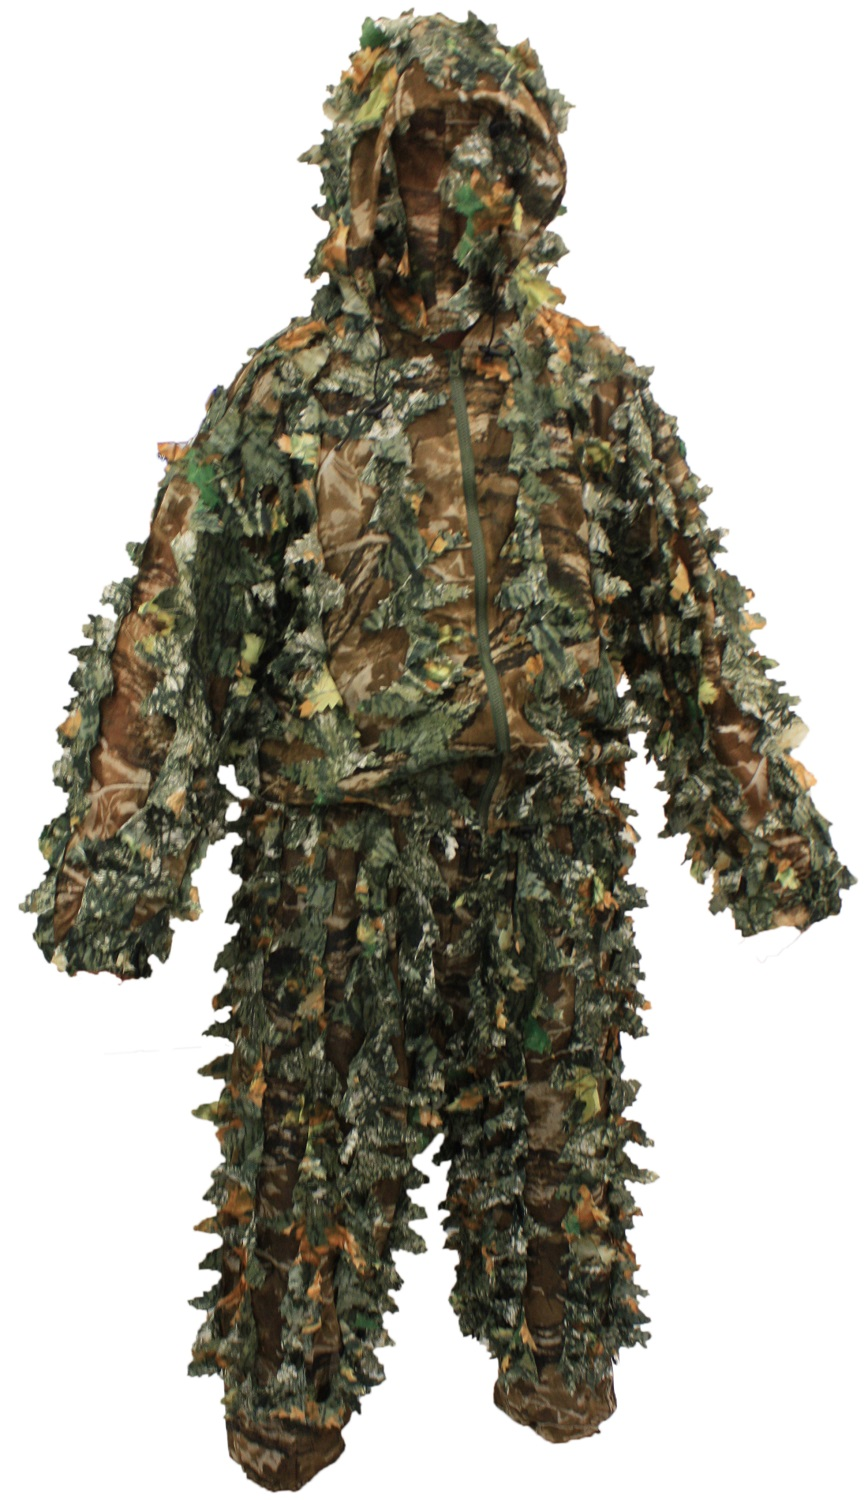 61c017075f30c WOODSIDE KIDS/CHILDRENS 3D LEAF SUIT WITH MASK CAMO/CAMOUFLAGE ...